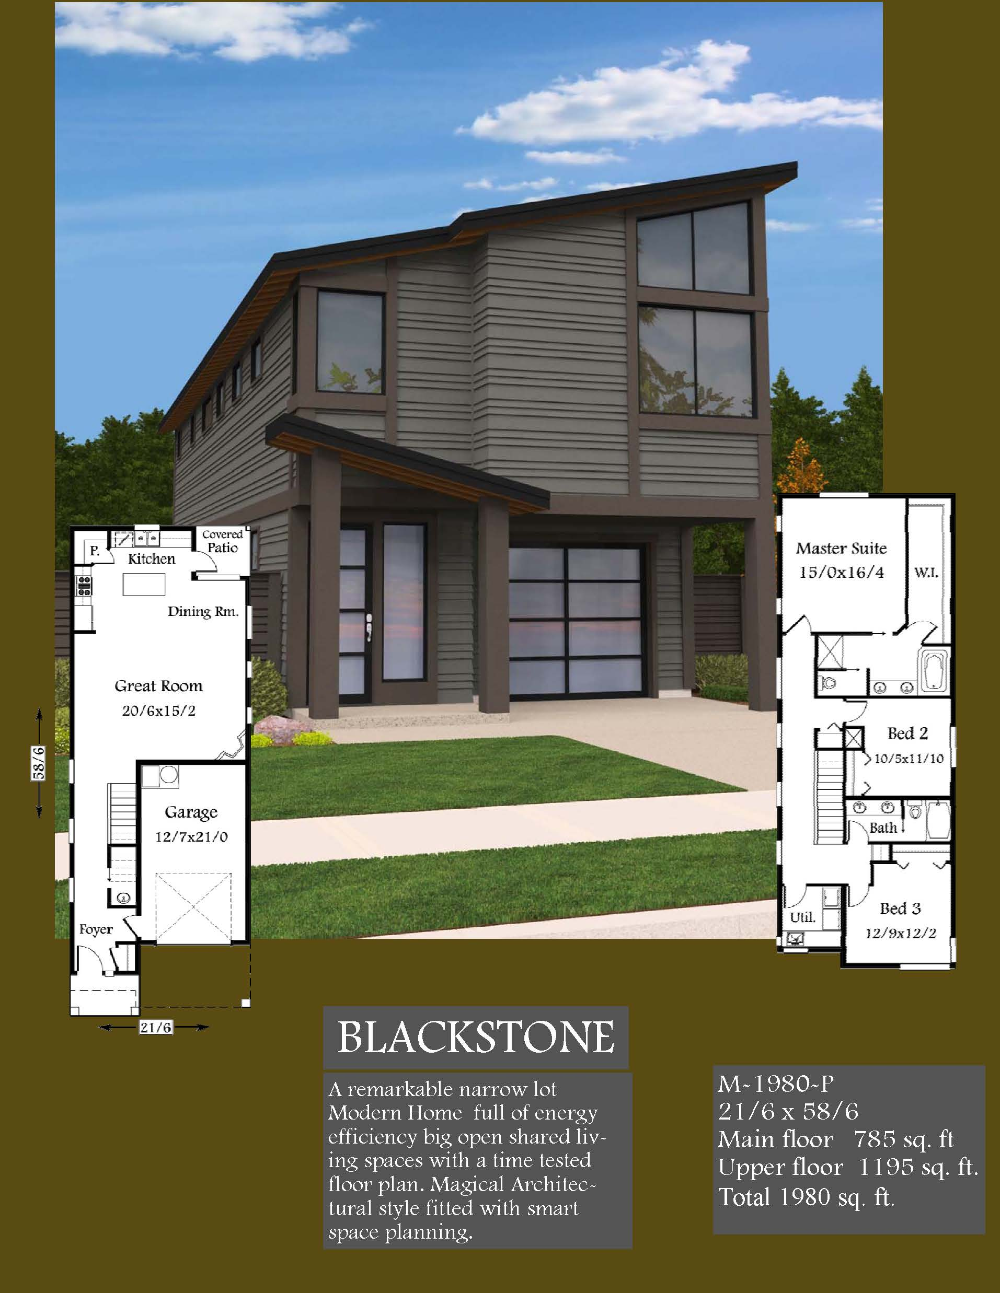 Blackstone Modern House Plan 2 Story Small House Plans With Garage Small Lake Houses Garage House Plans Small House Plans